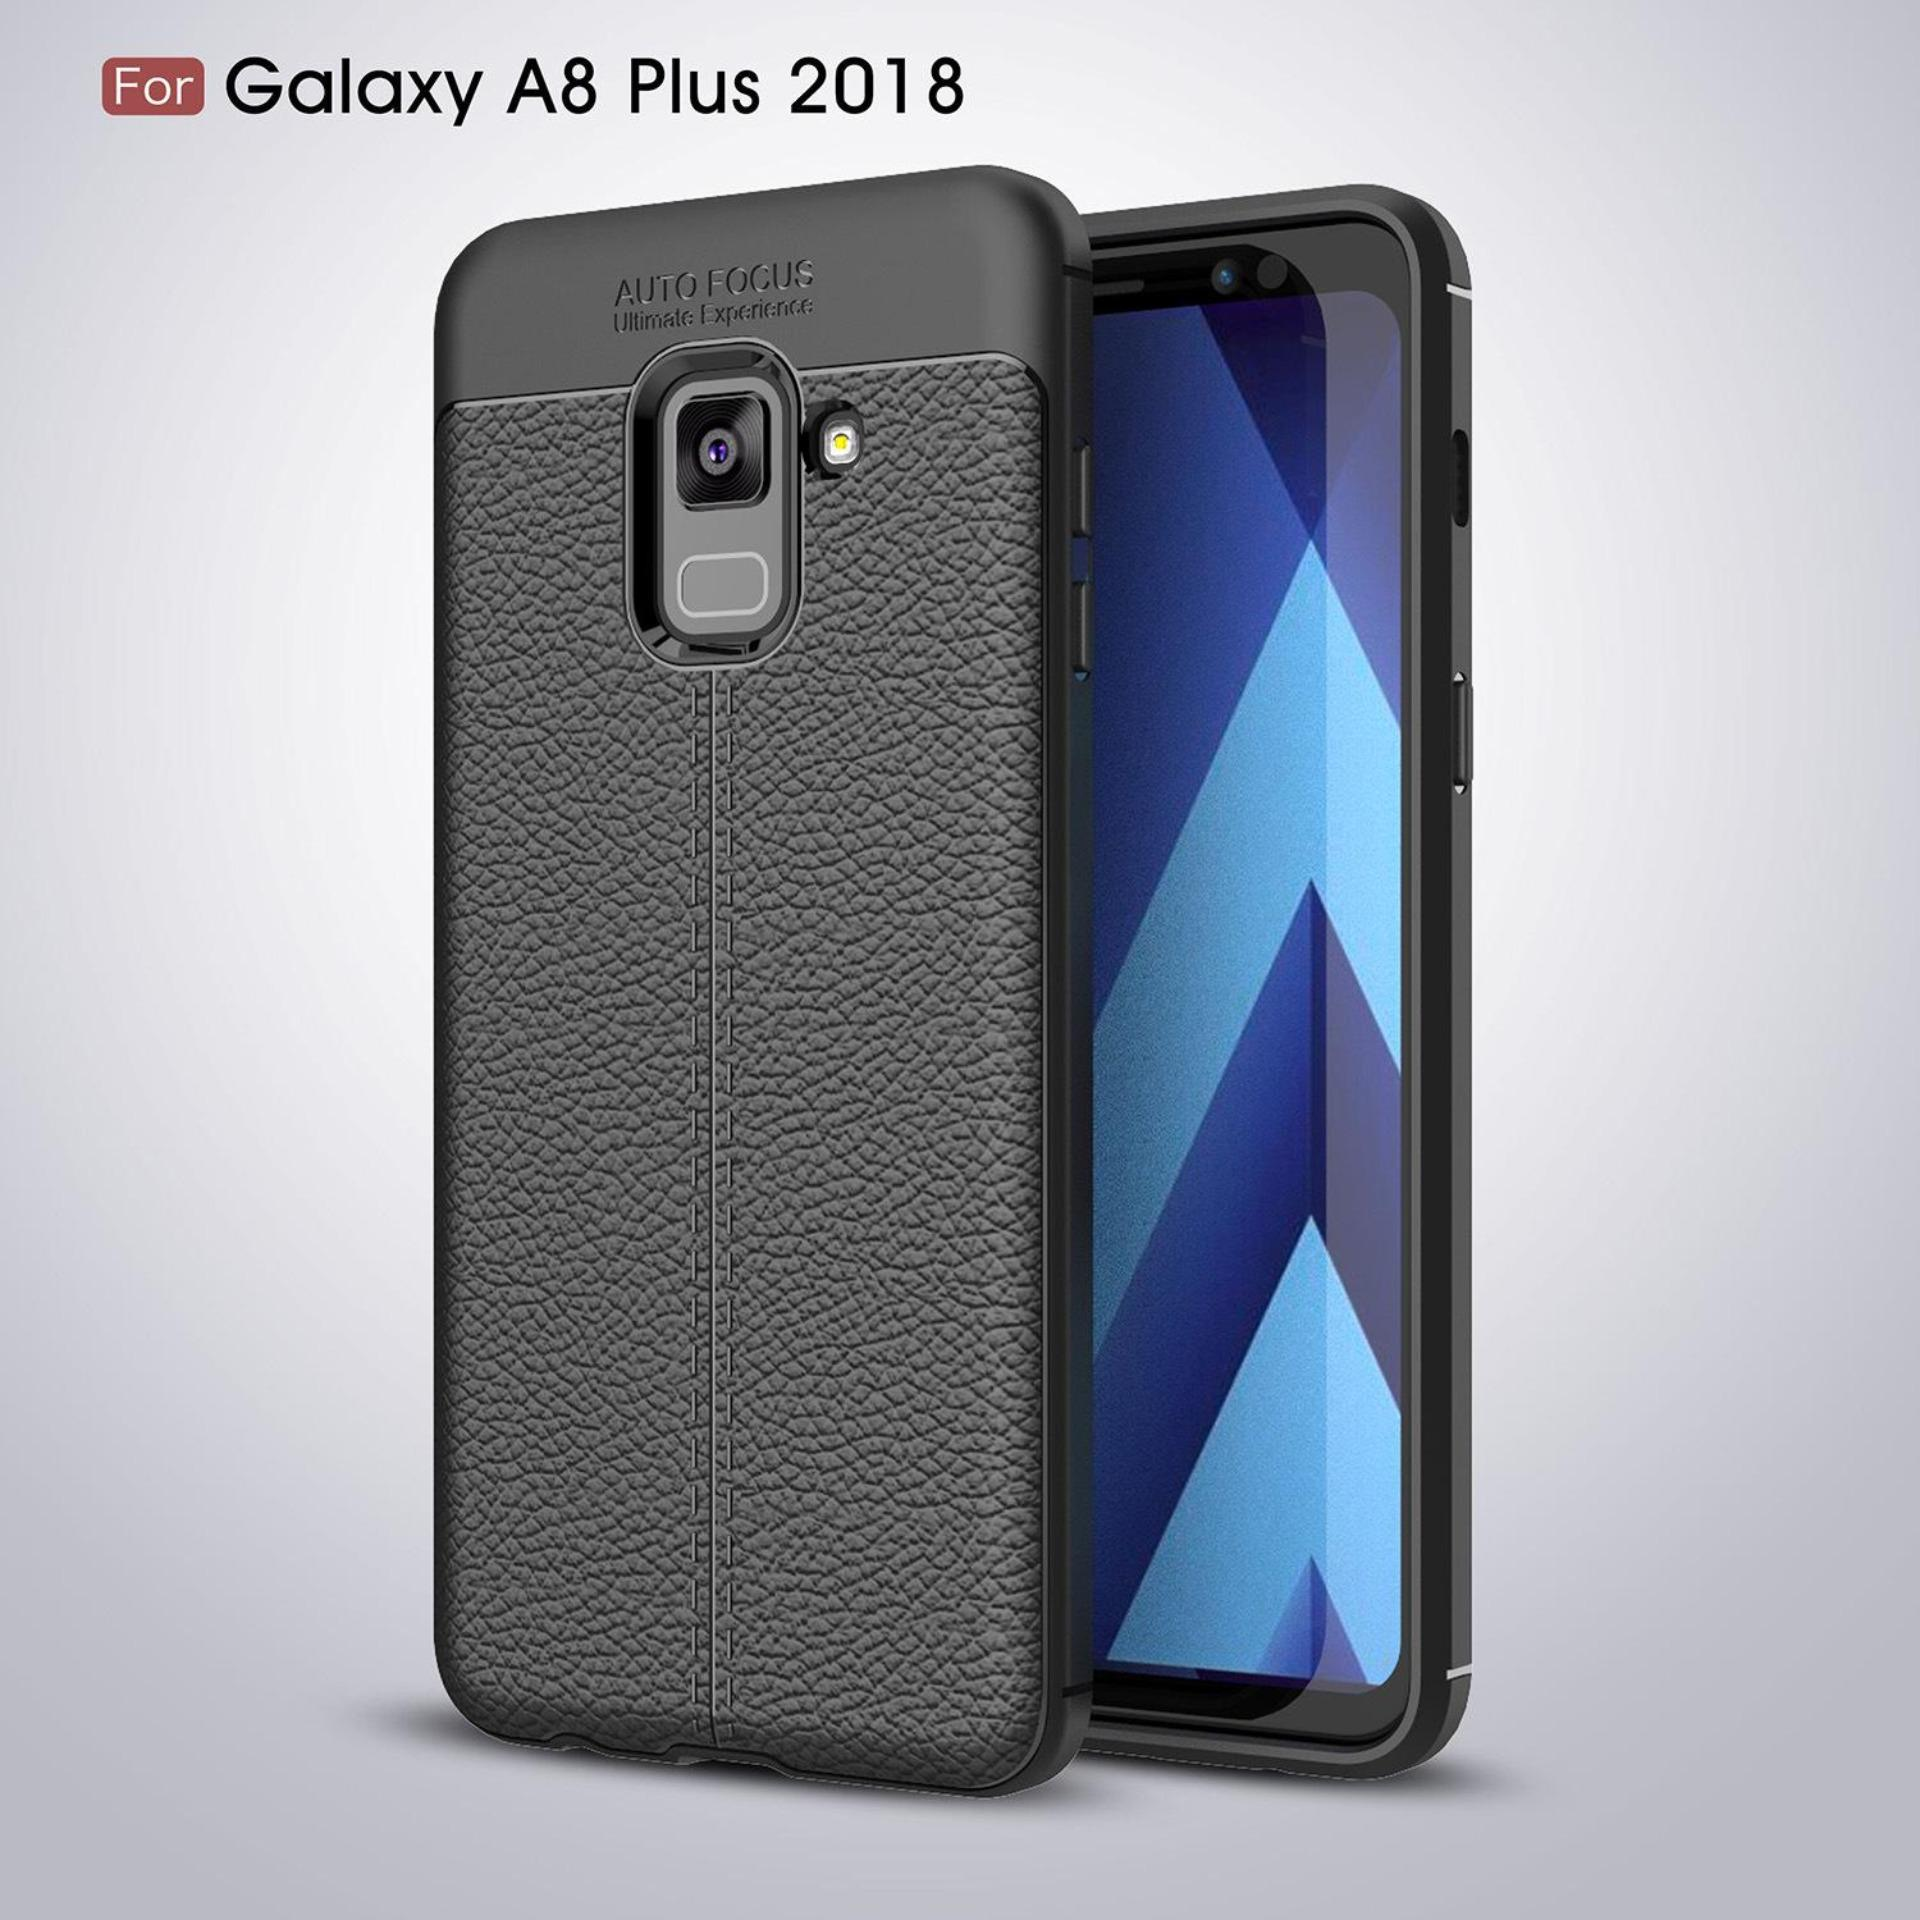 Case Leather Ultimate Experience Shockproof Premium Quality Hybrid Grade A Case for Samsung Galaxy A8 Plus